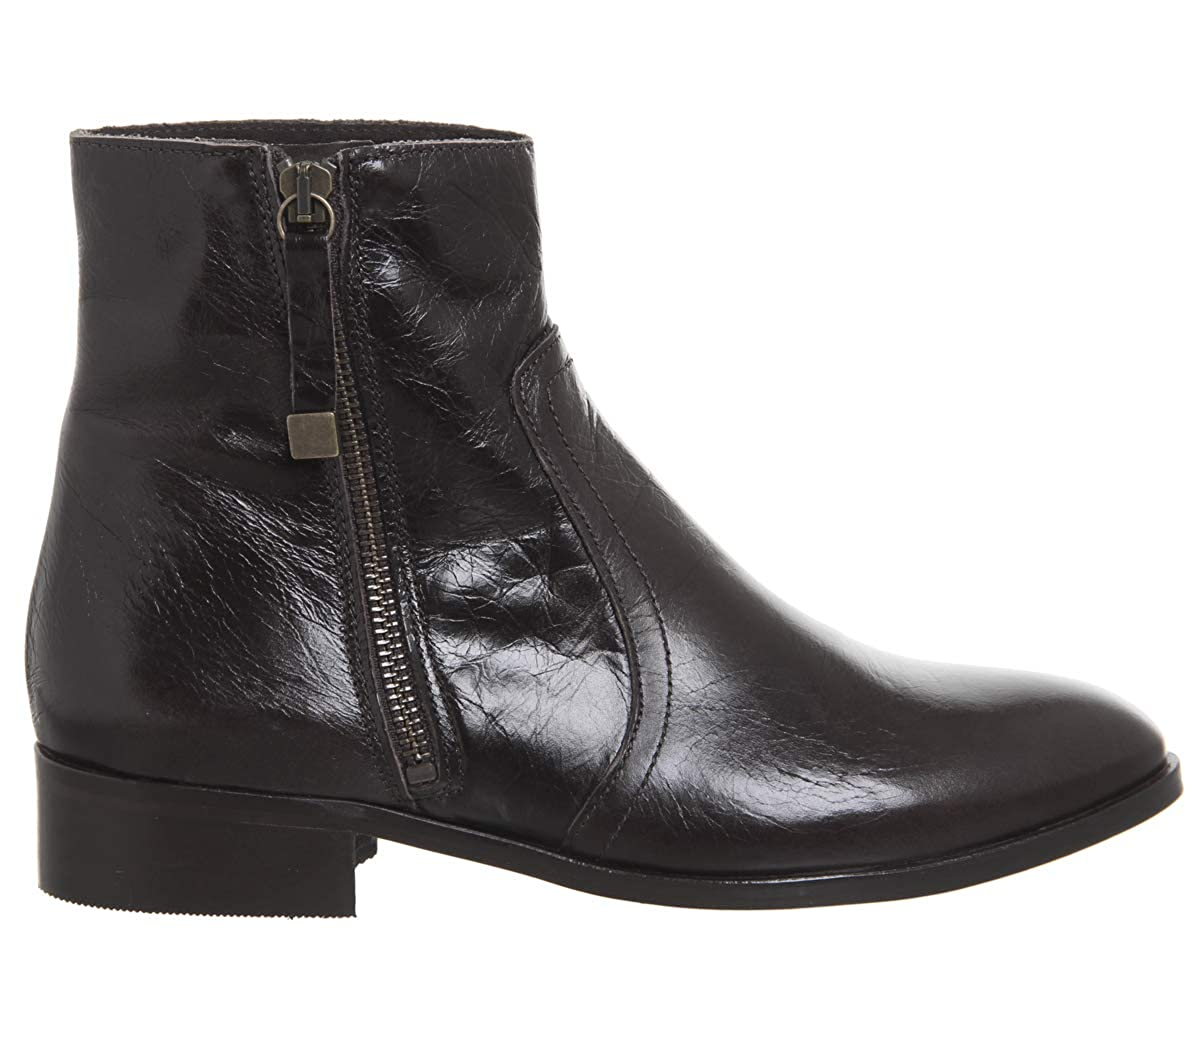 eccebfb173e Office Actor Side Zip Flat Ankle Boots: Amazon.co.uk: Shoes & Bags